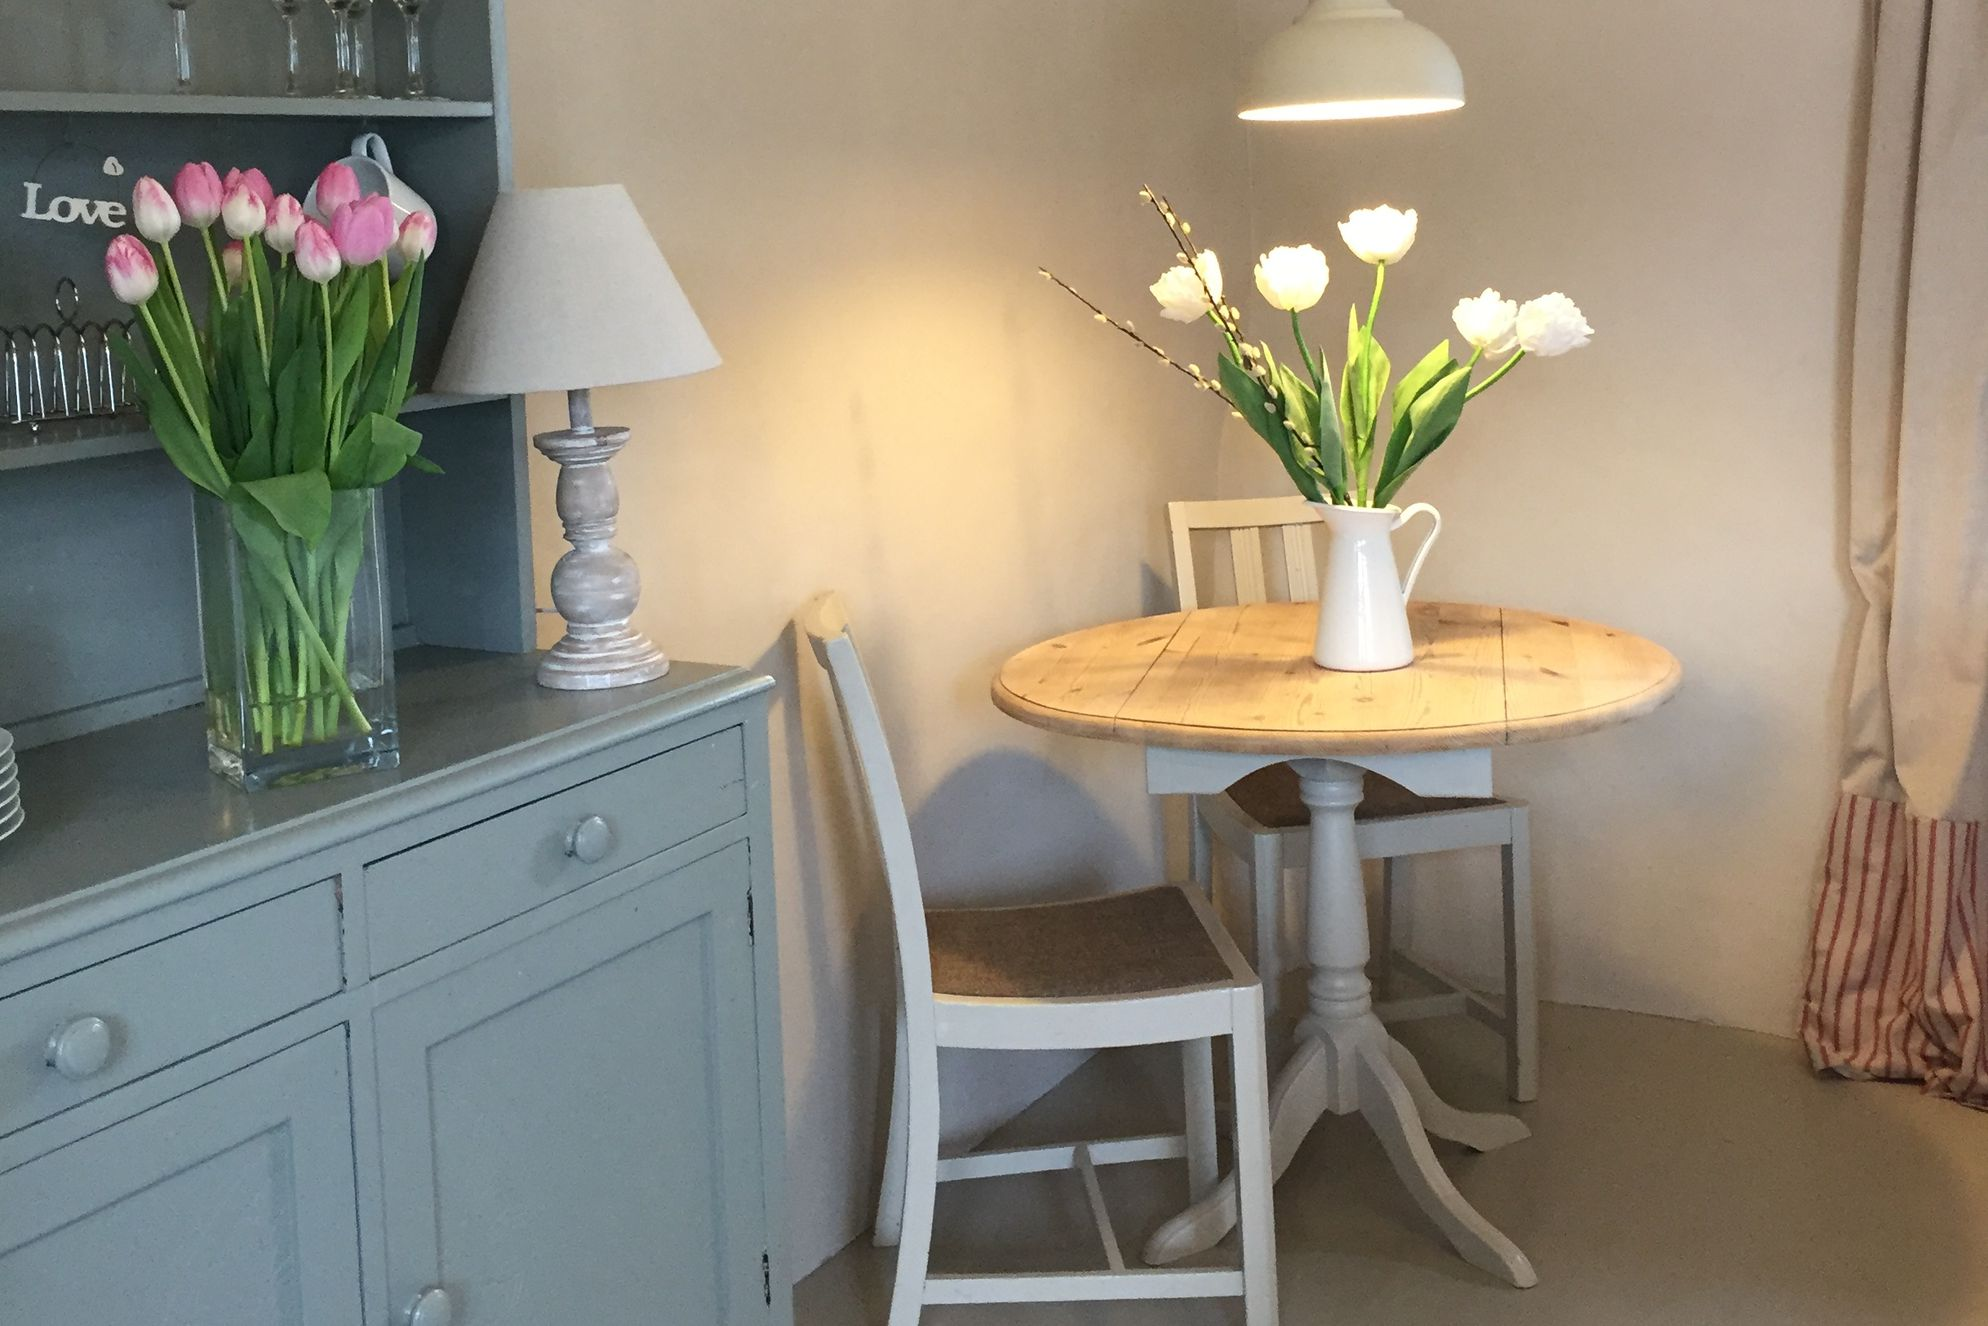 Country cottage style dining area with table for two and tulips in a vase